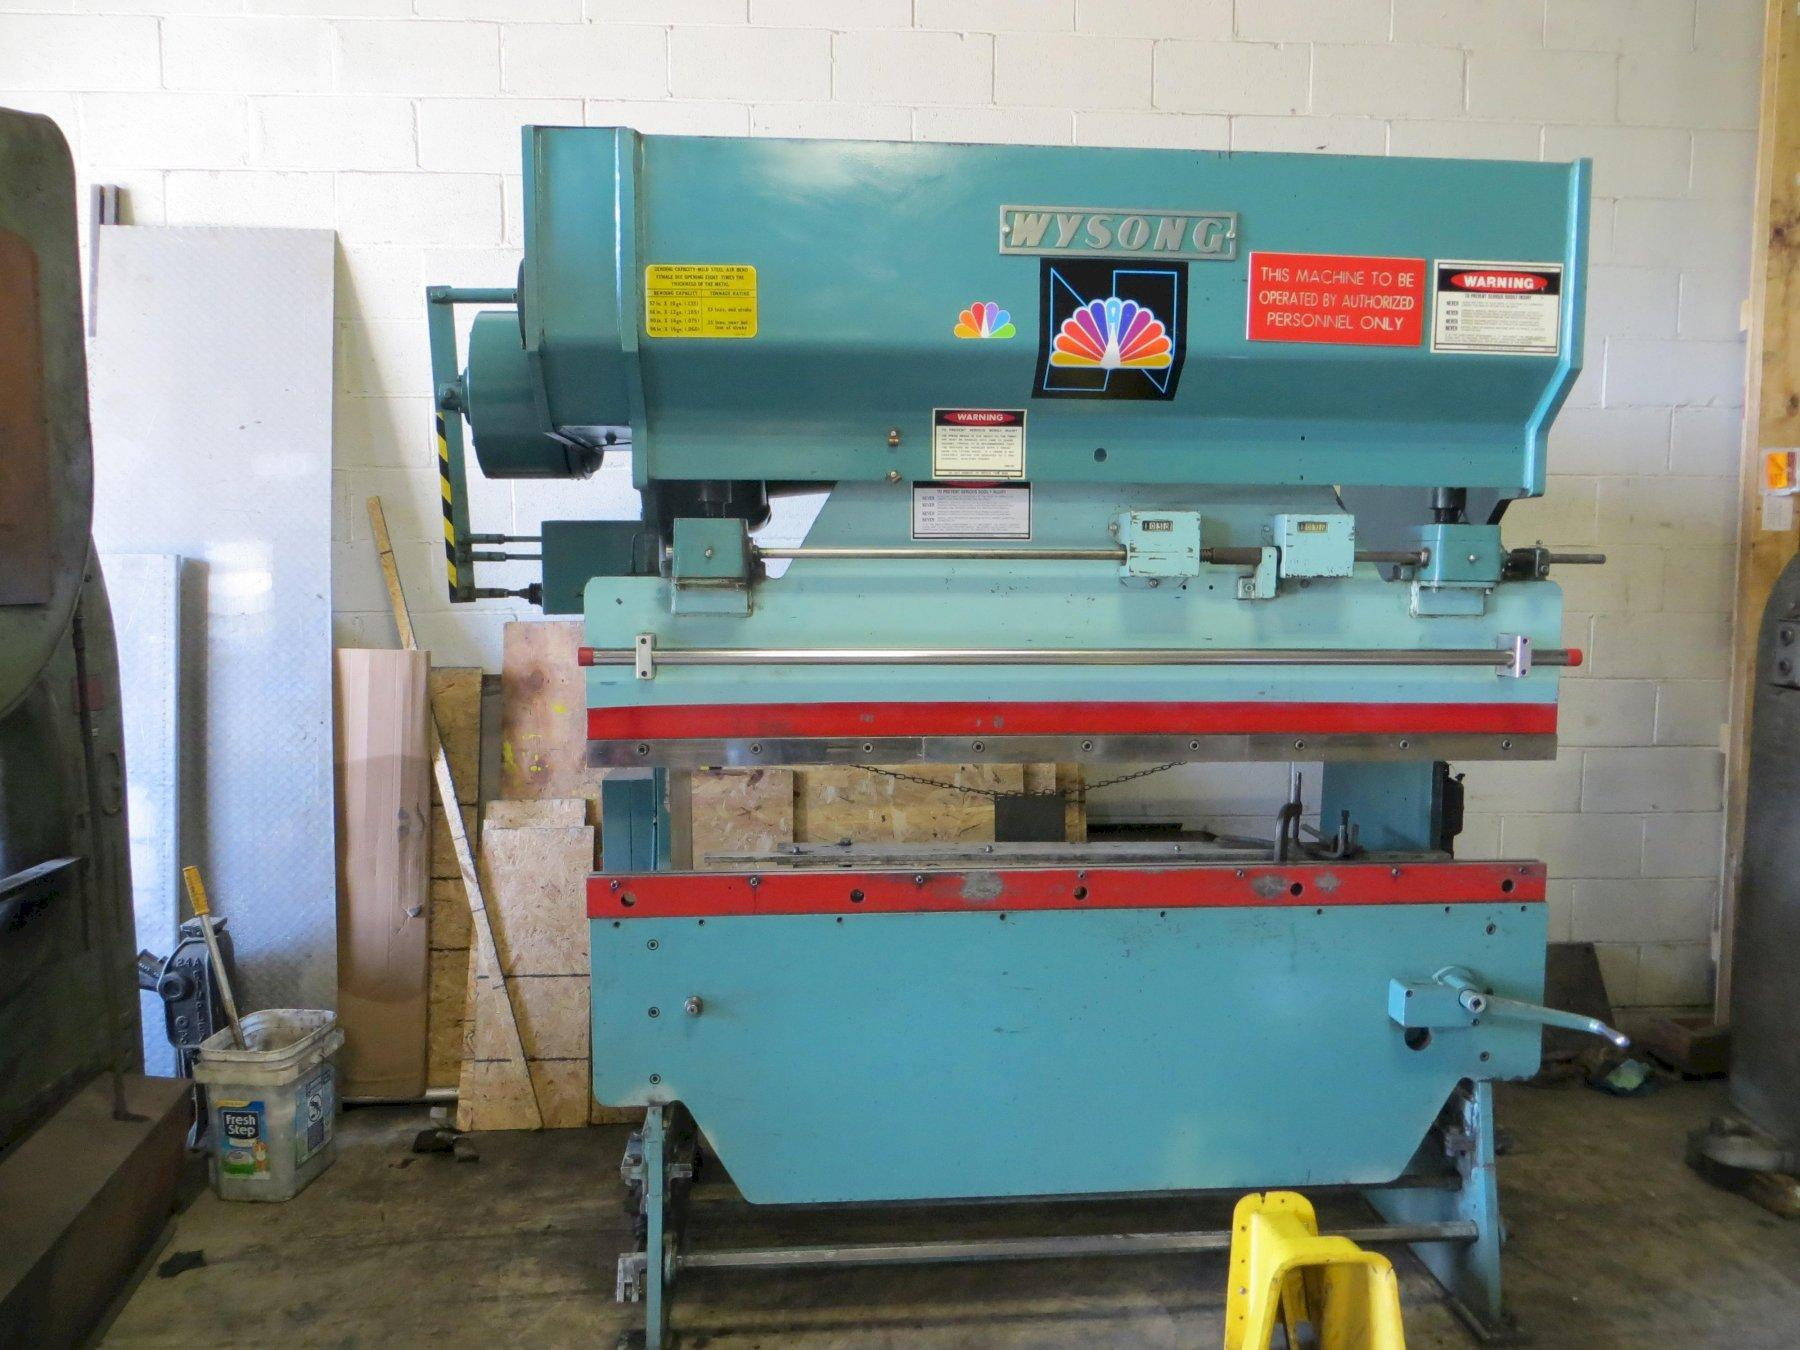 35 Ton x 6 ft, Wysong Mechanical Press Brake Model 3572